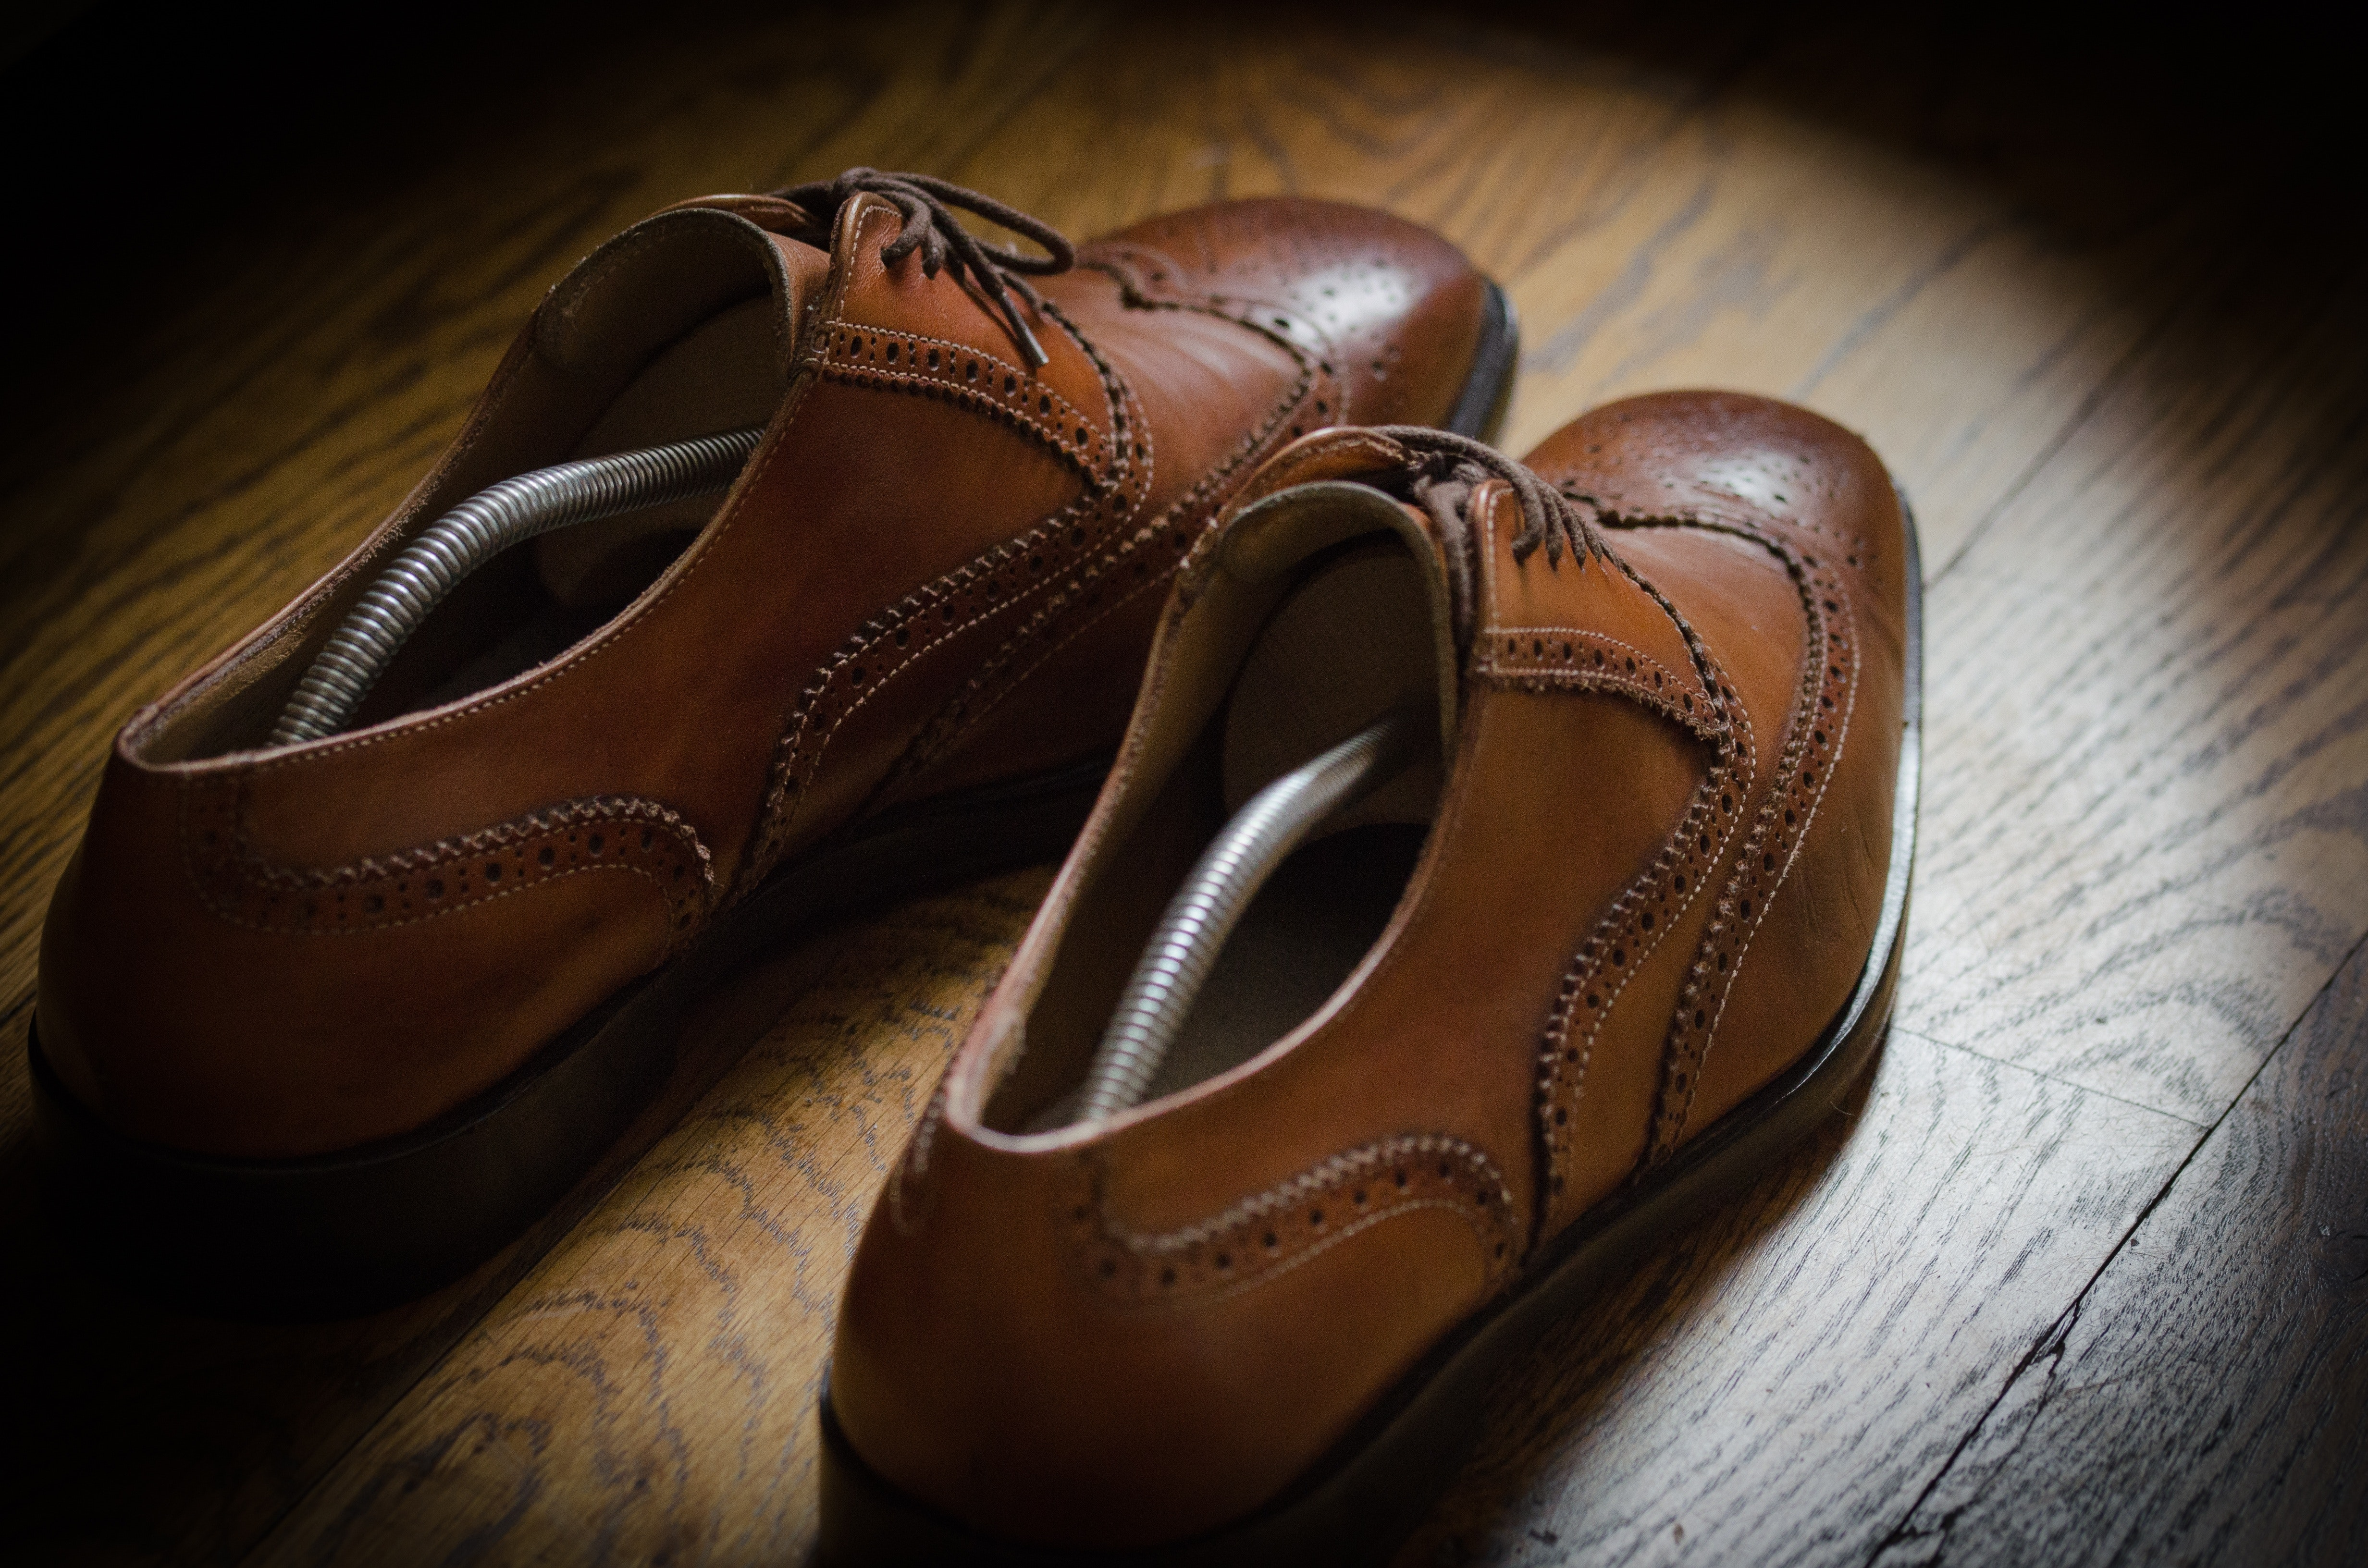 5404aefbdad0 Pair of Brown Leather Oxford Wingtip Shoes · Free Stock Photo